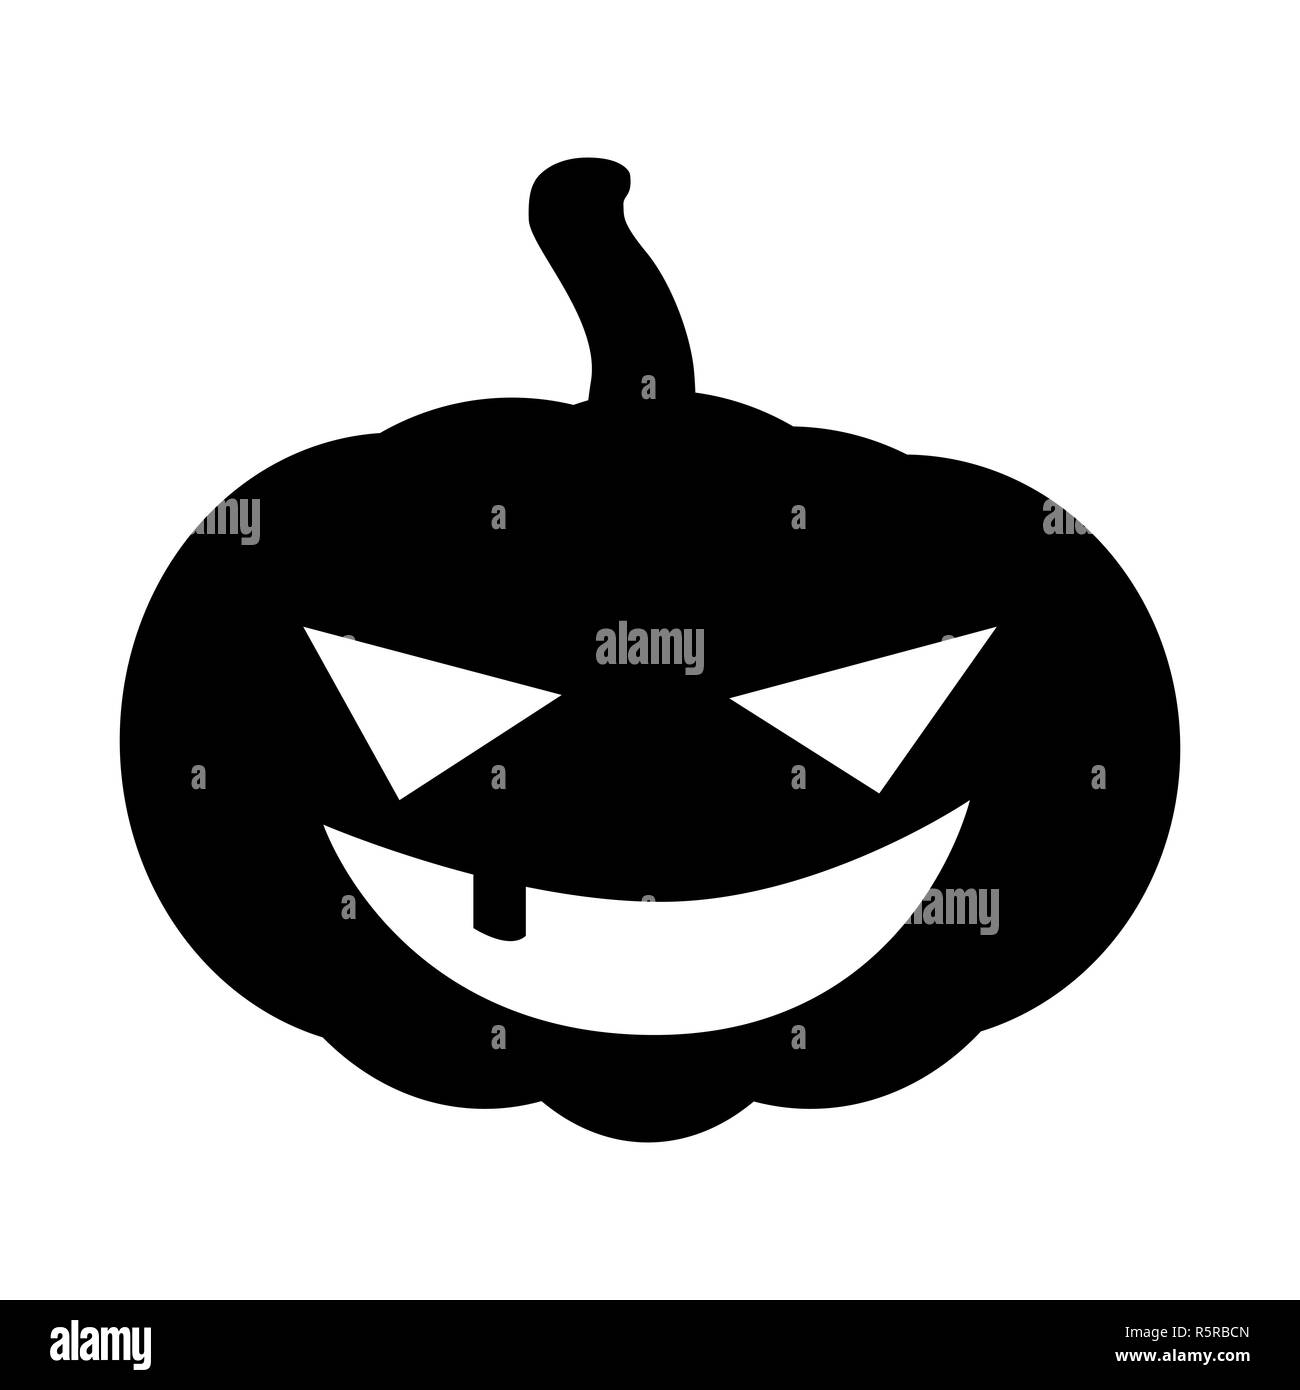 Halloween Pumpkin Silhouette Vector Illustration Jack O Lantern Isolated On White Background Scary Orange Picture With Eyes Stock Photo Alamy Take a different approach to pumpkin decorating by applying a silhouette. https www alamy com halloween pumpkin silhouette vector illustration jack o lantern isolated on white background scary orange picture with eyes image227321941 html